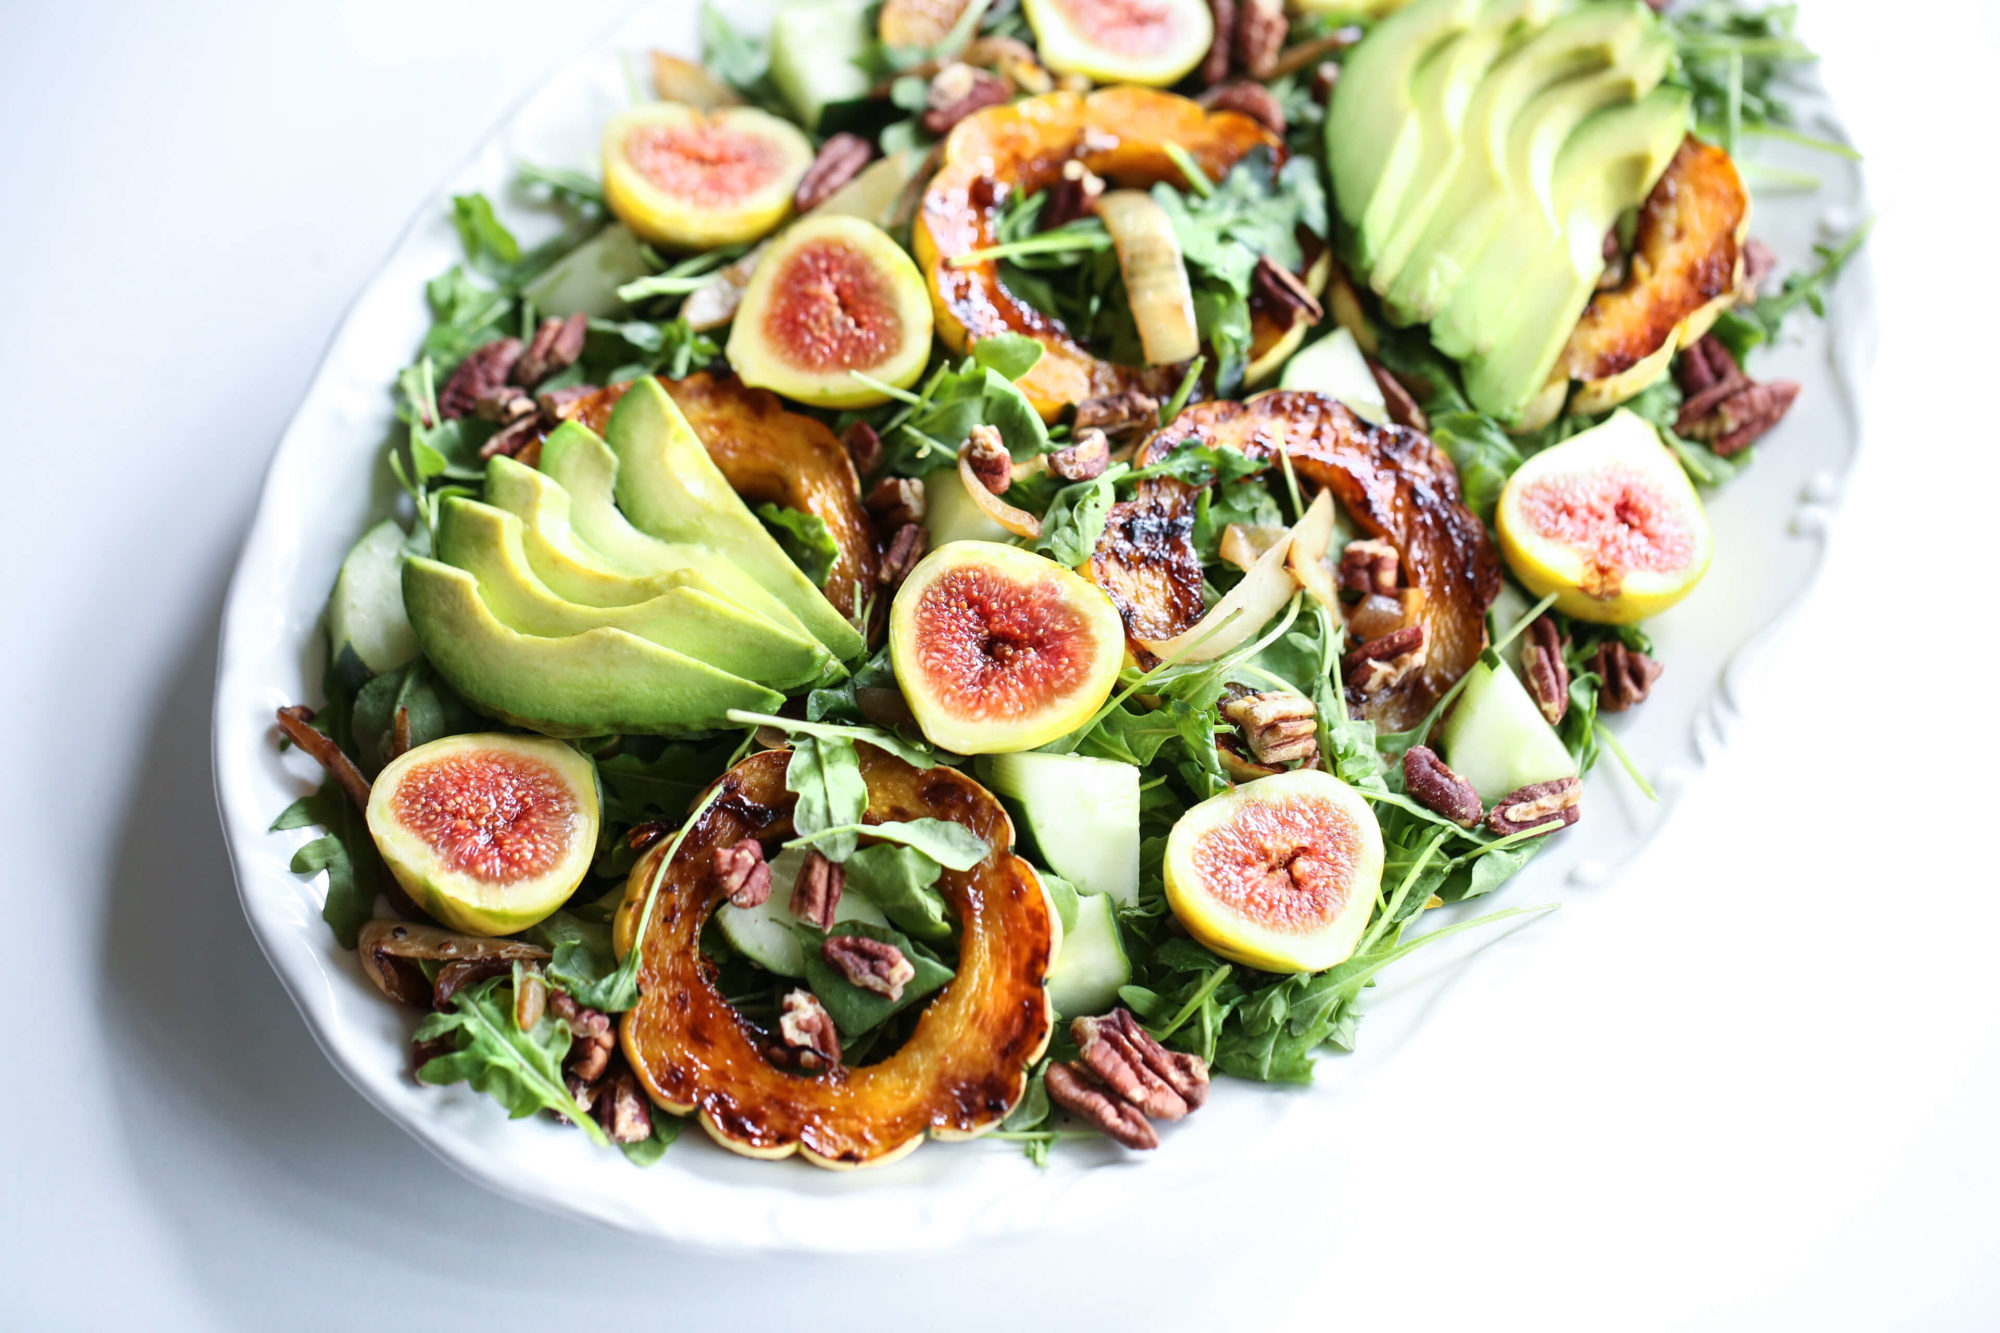 Autumn Salad with Caramelized Delicata Squash & Maple Vinaigrette